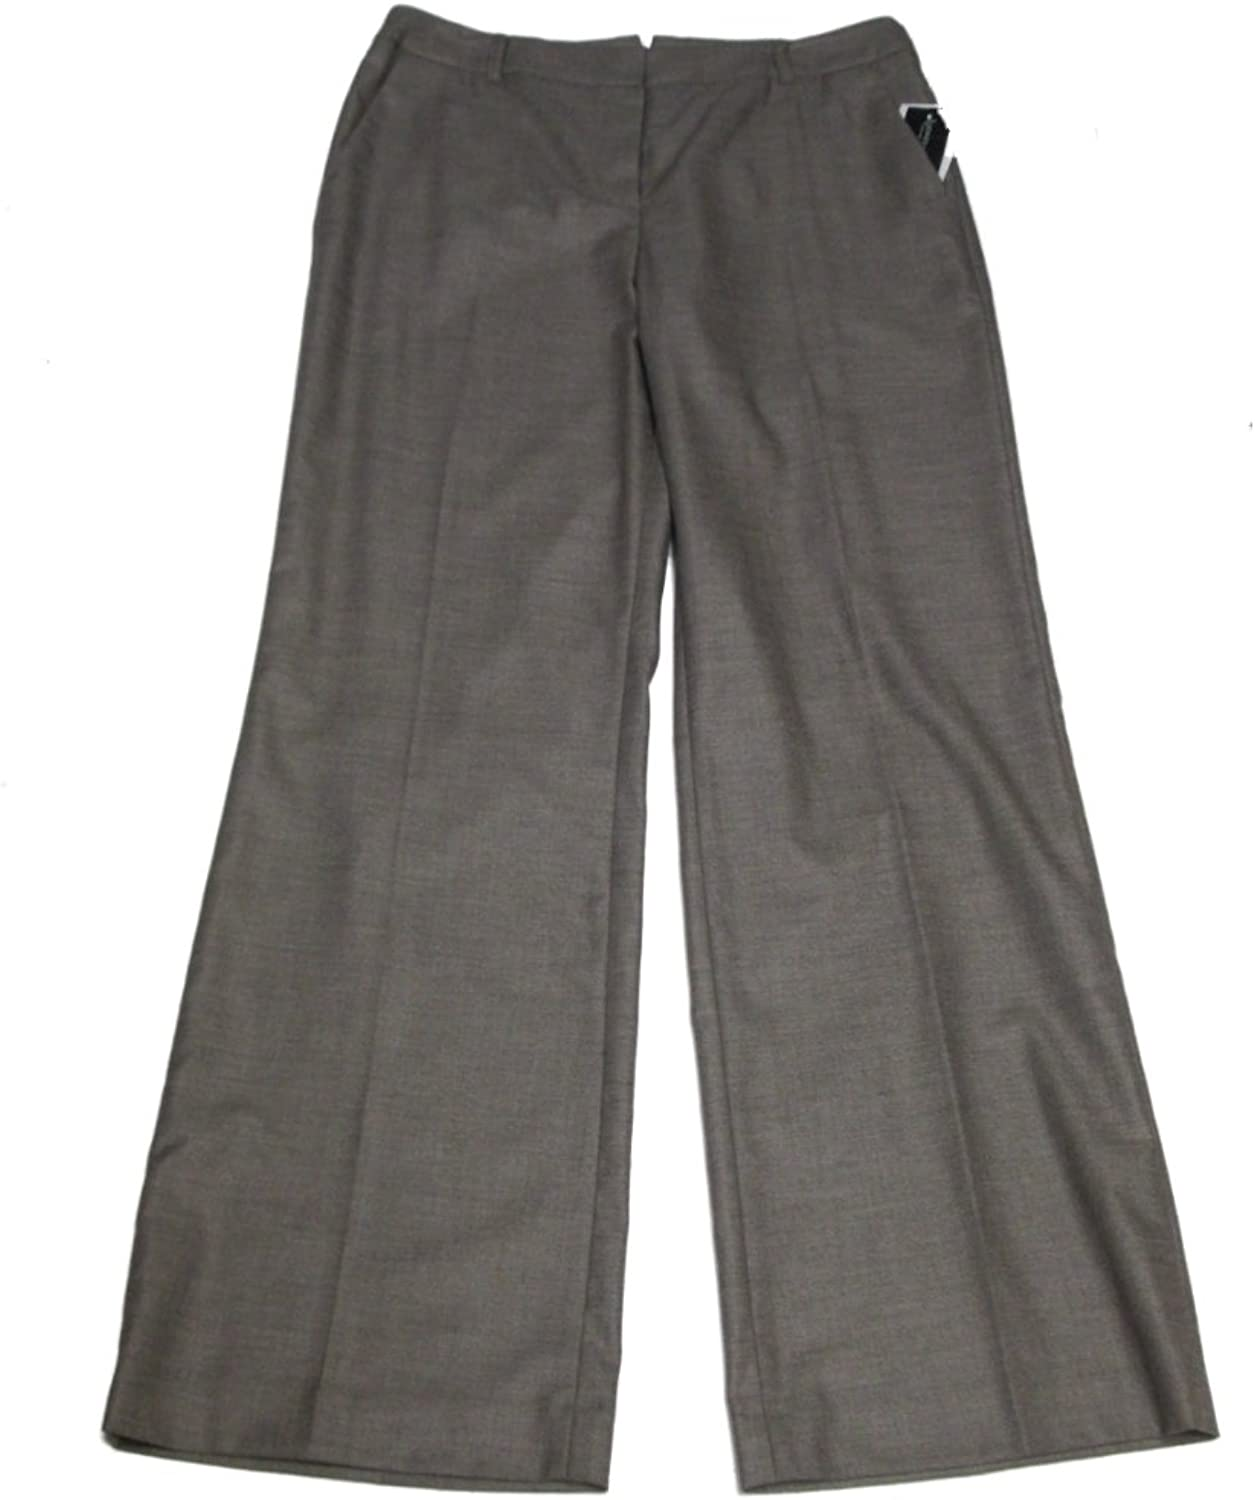 Jones New York Women's Sutton Place Pants Heather Grey